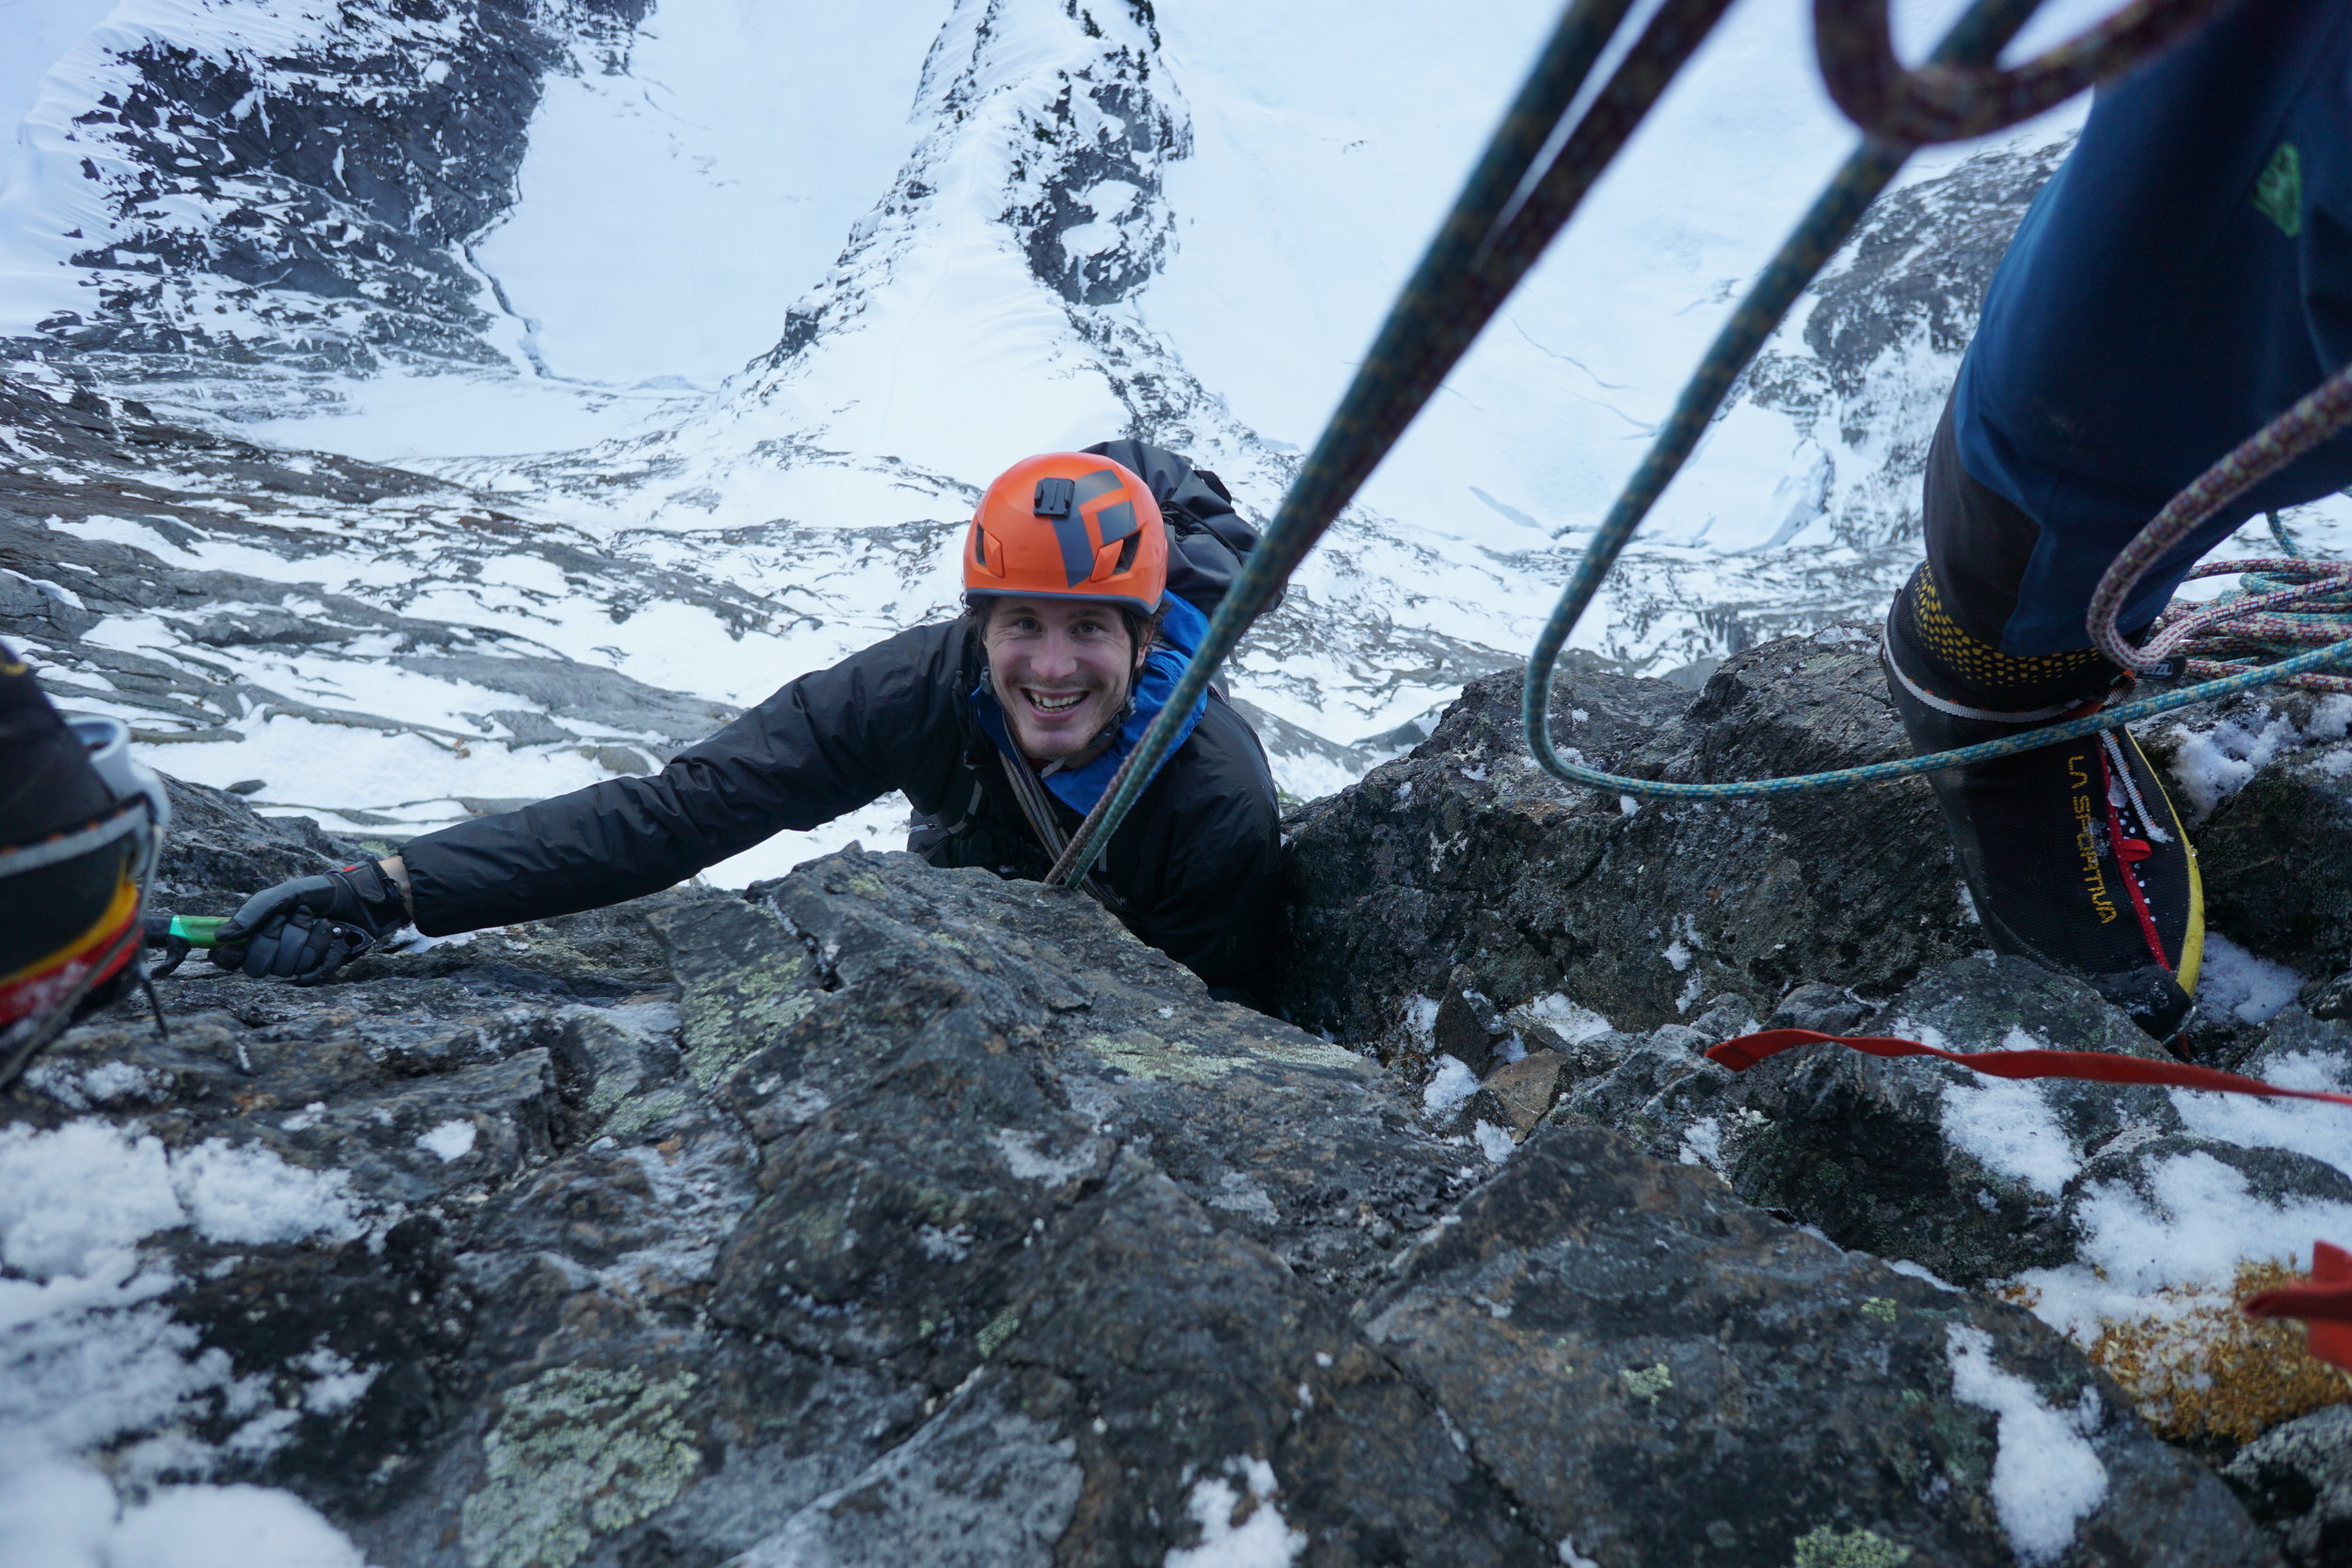 Marc-Andre Leclerc on Navigator Wall, Mt. Slesse. A memorable experience.